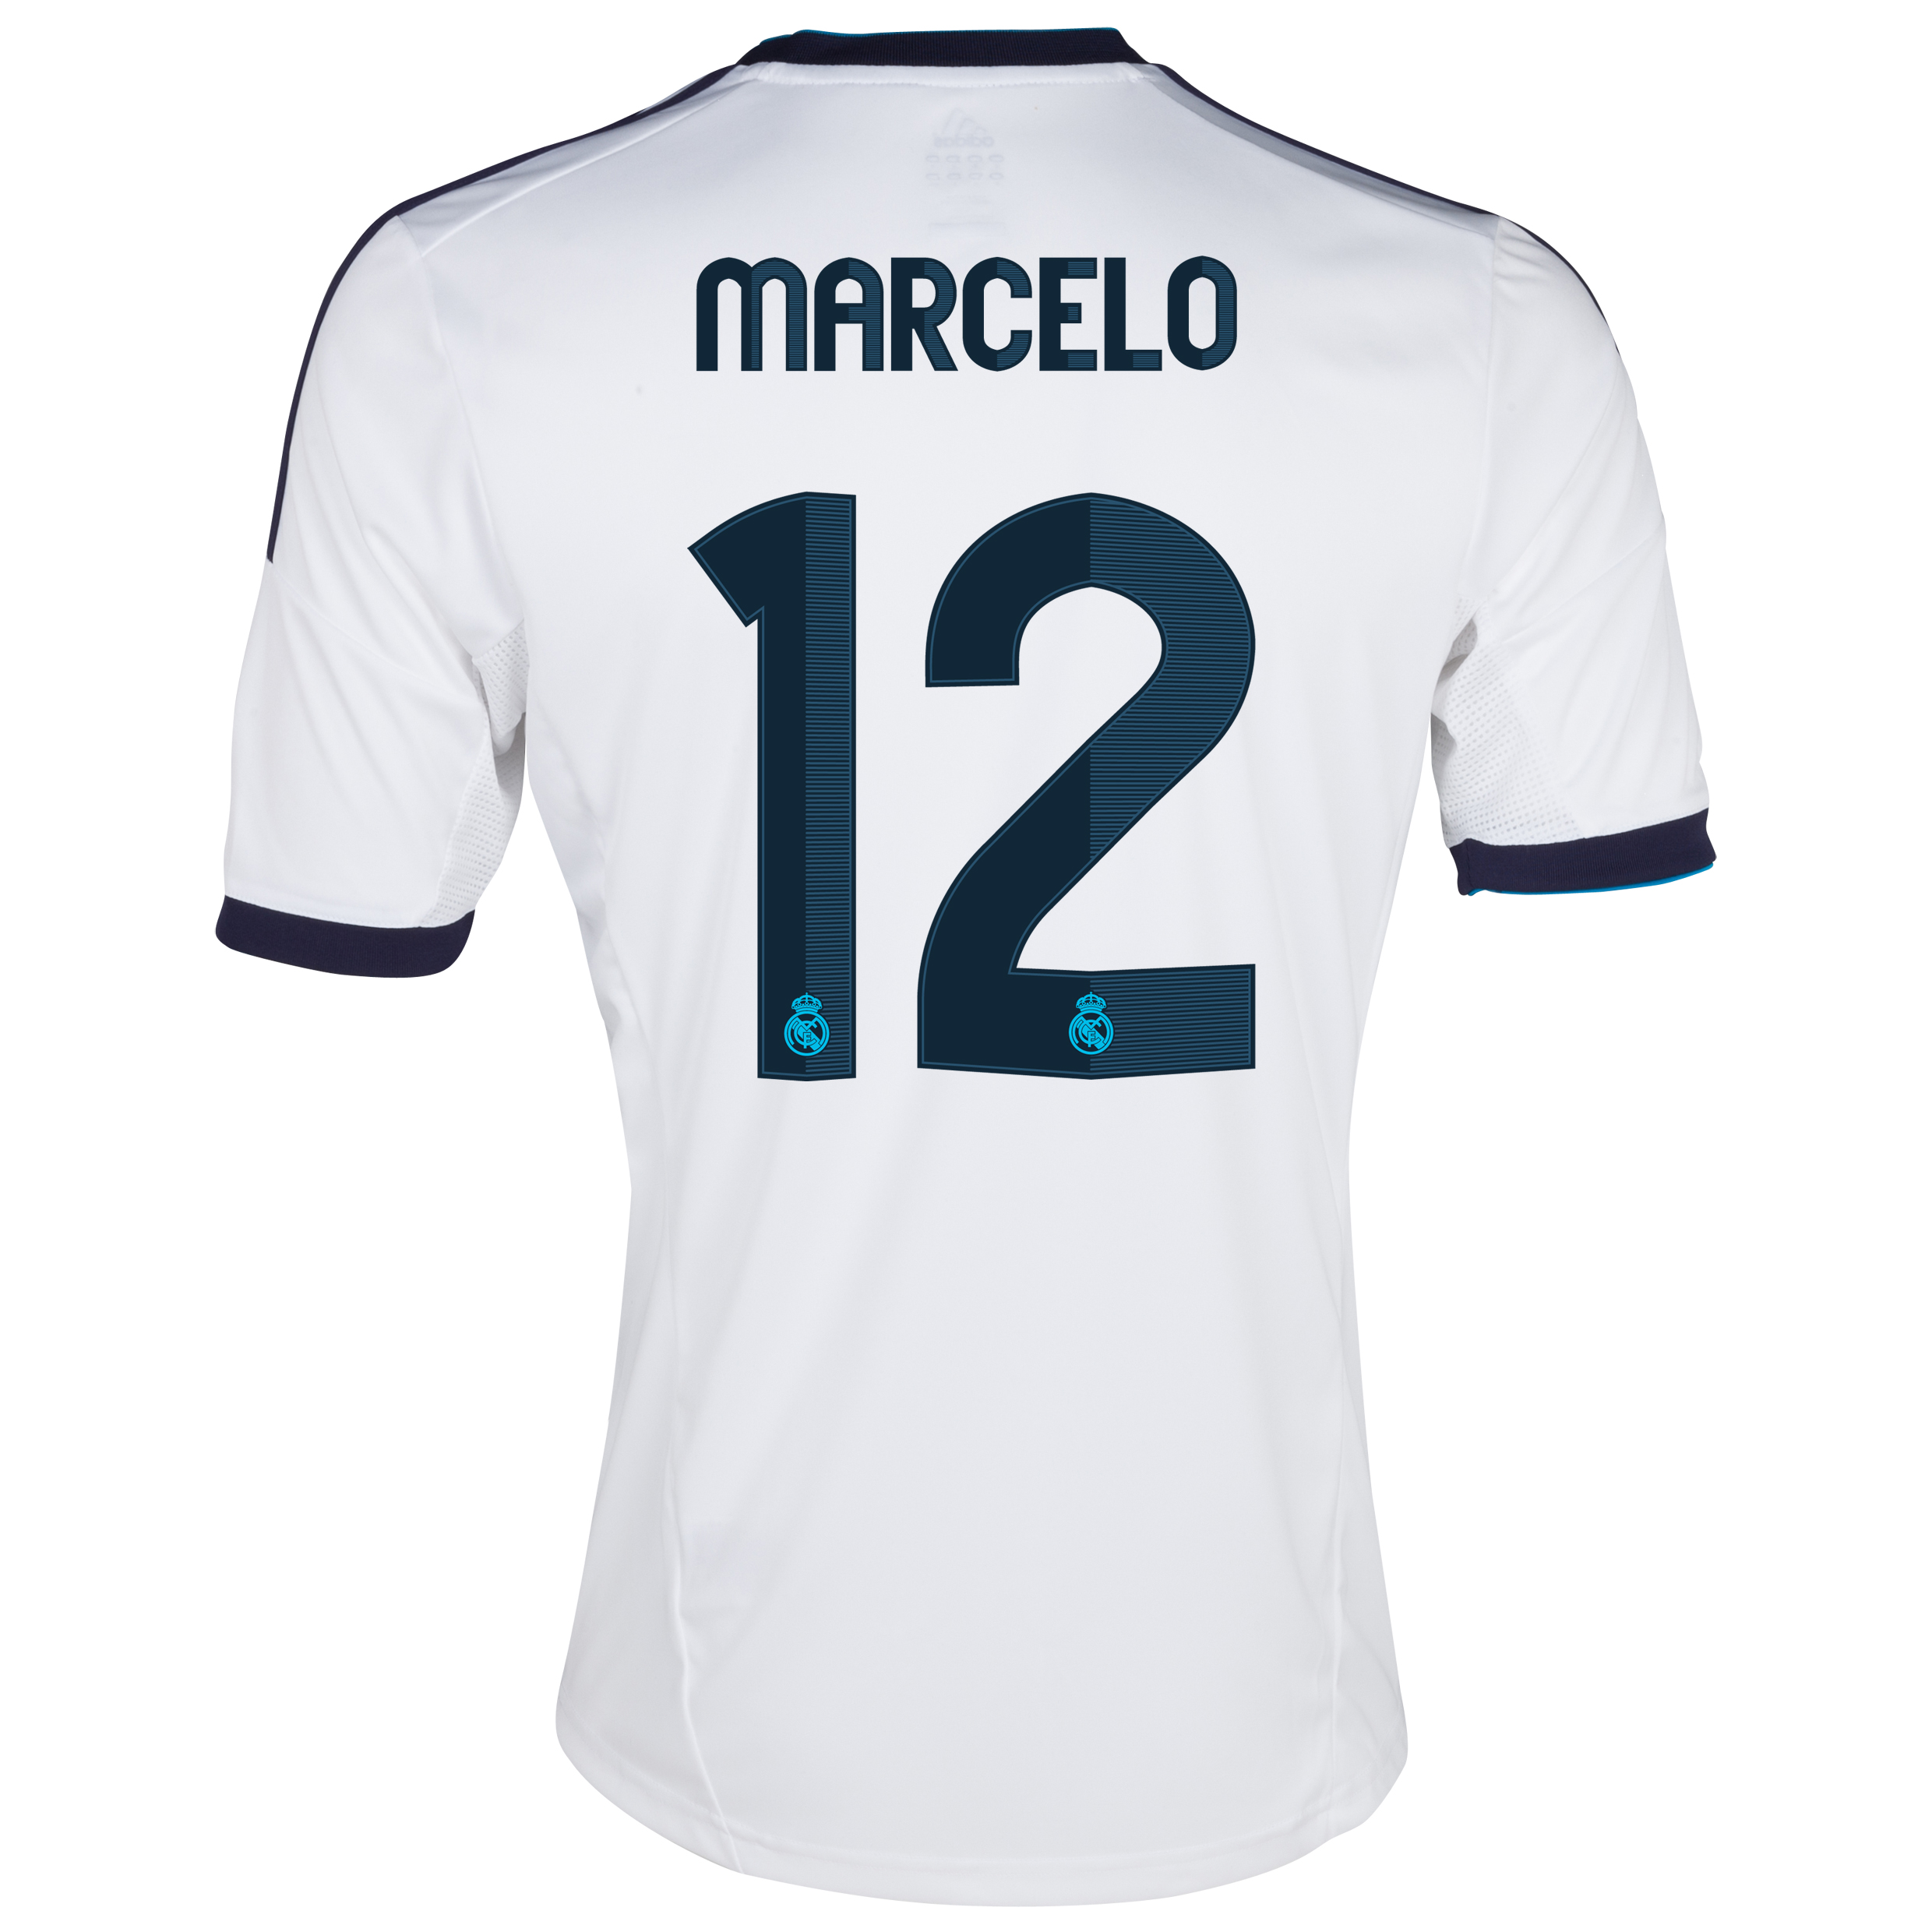 Camiseta 1 equipacin del Real Madrid 2012/13 con Marcelo 12